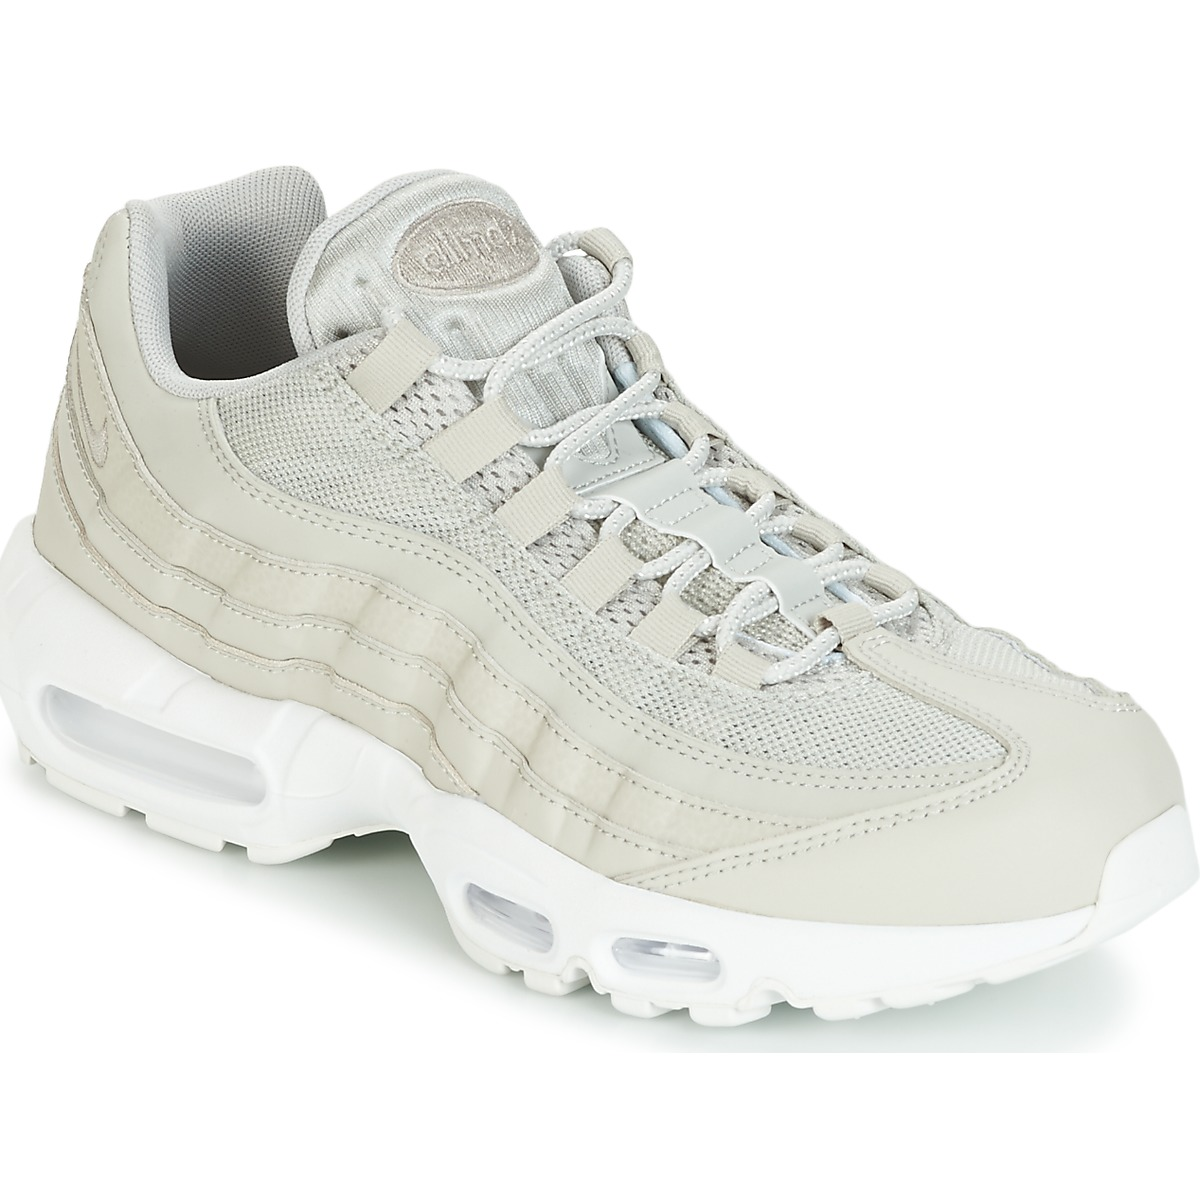 on sale 05e8d ba888 air max 95 blanche spartoo Looking ORlmf